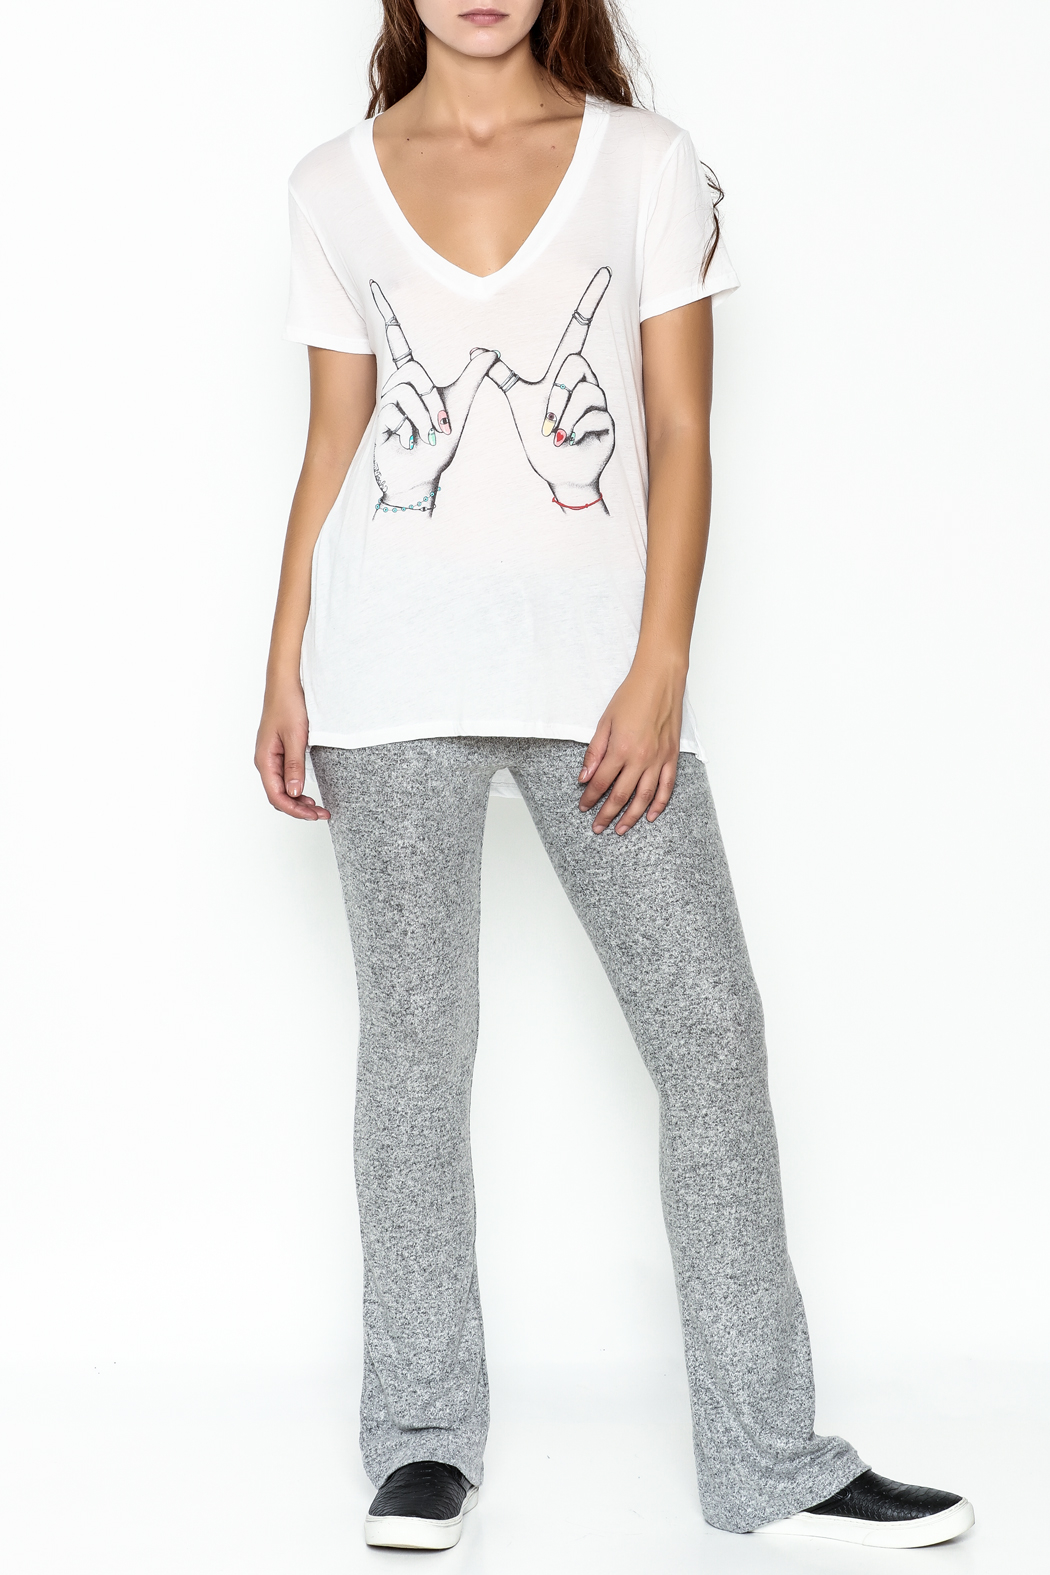 Lauren Moshi V Neck Graphic Tee - Side Cropped Image